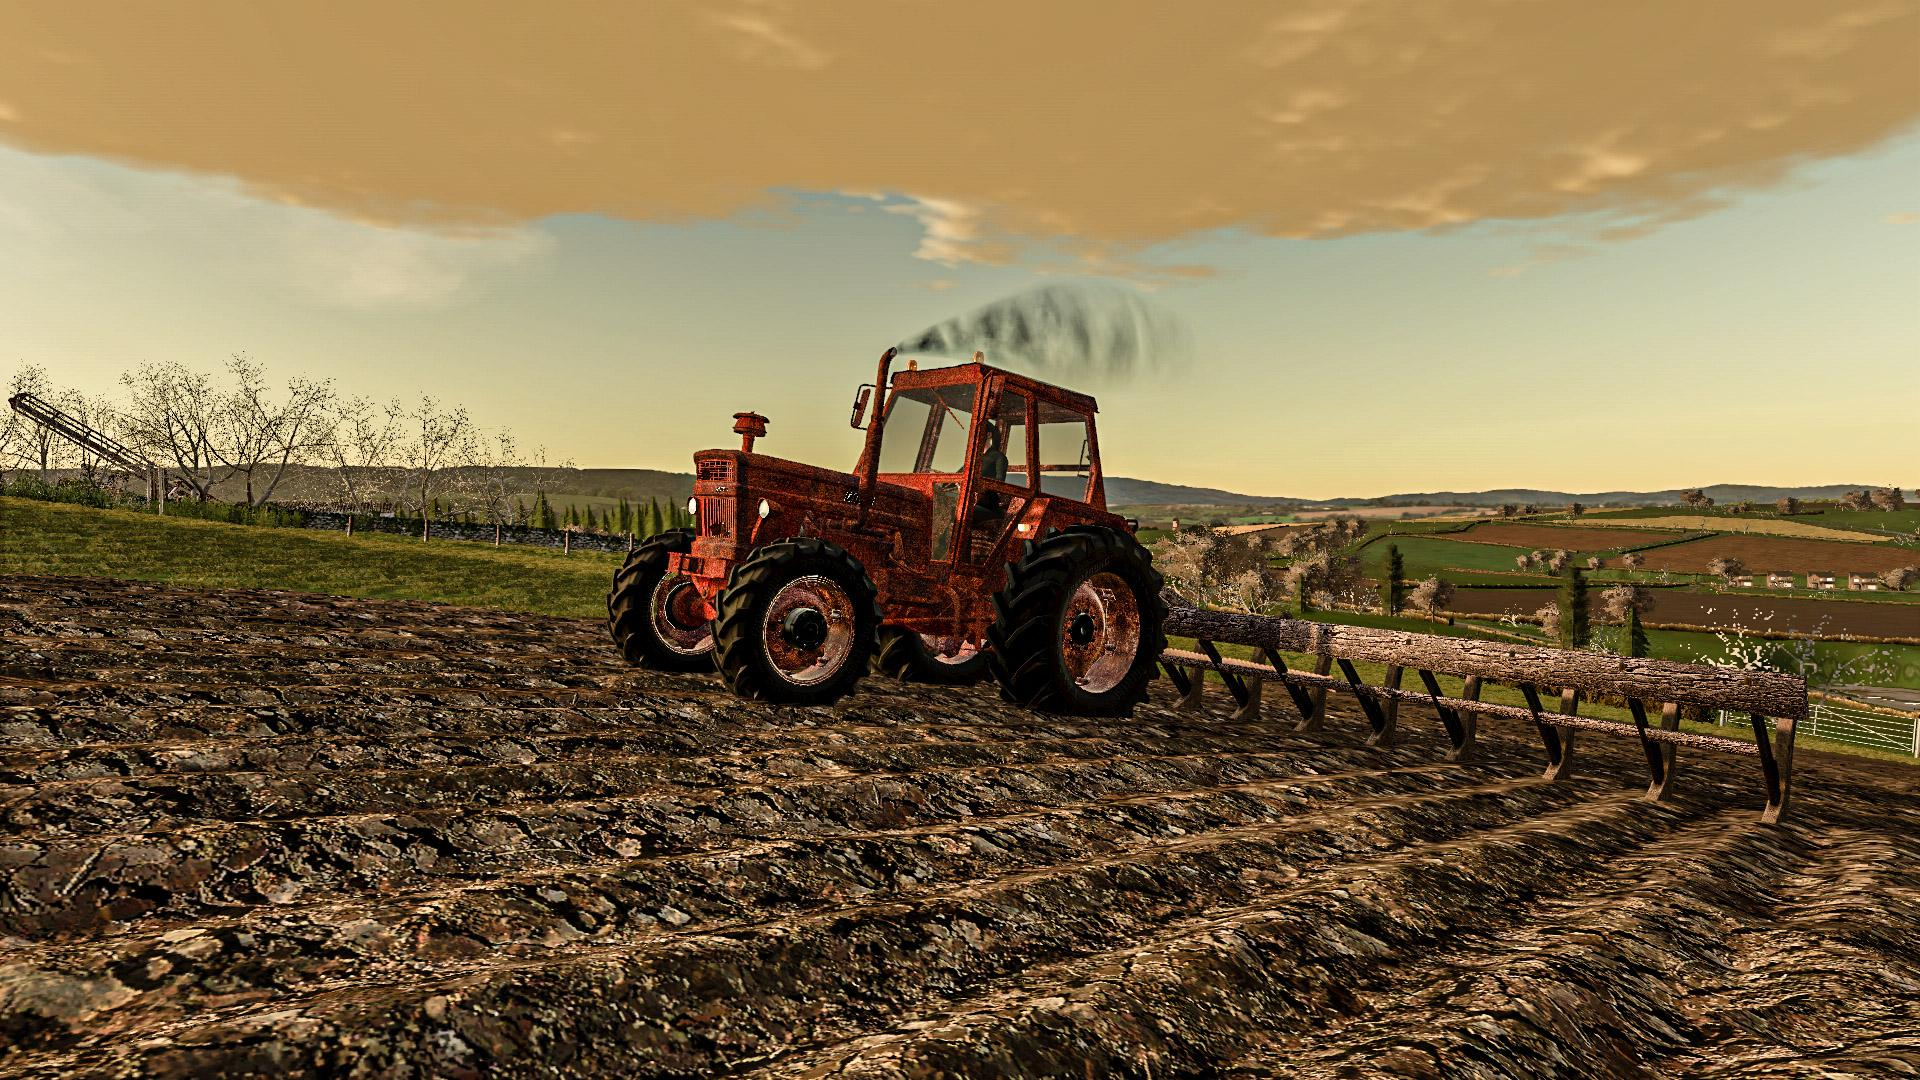 FS19 - Rusty Tractor With Old Plow V1.0